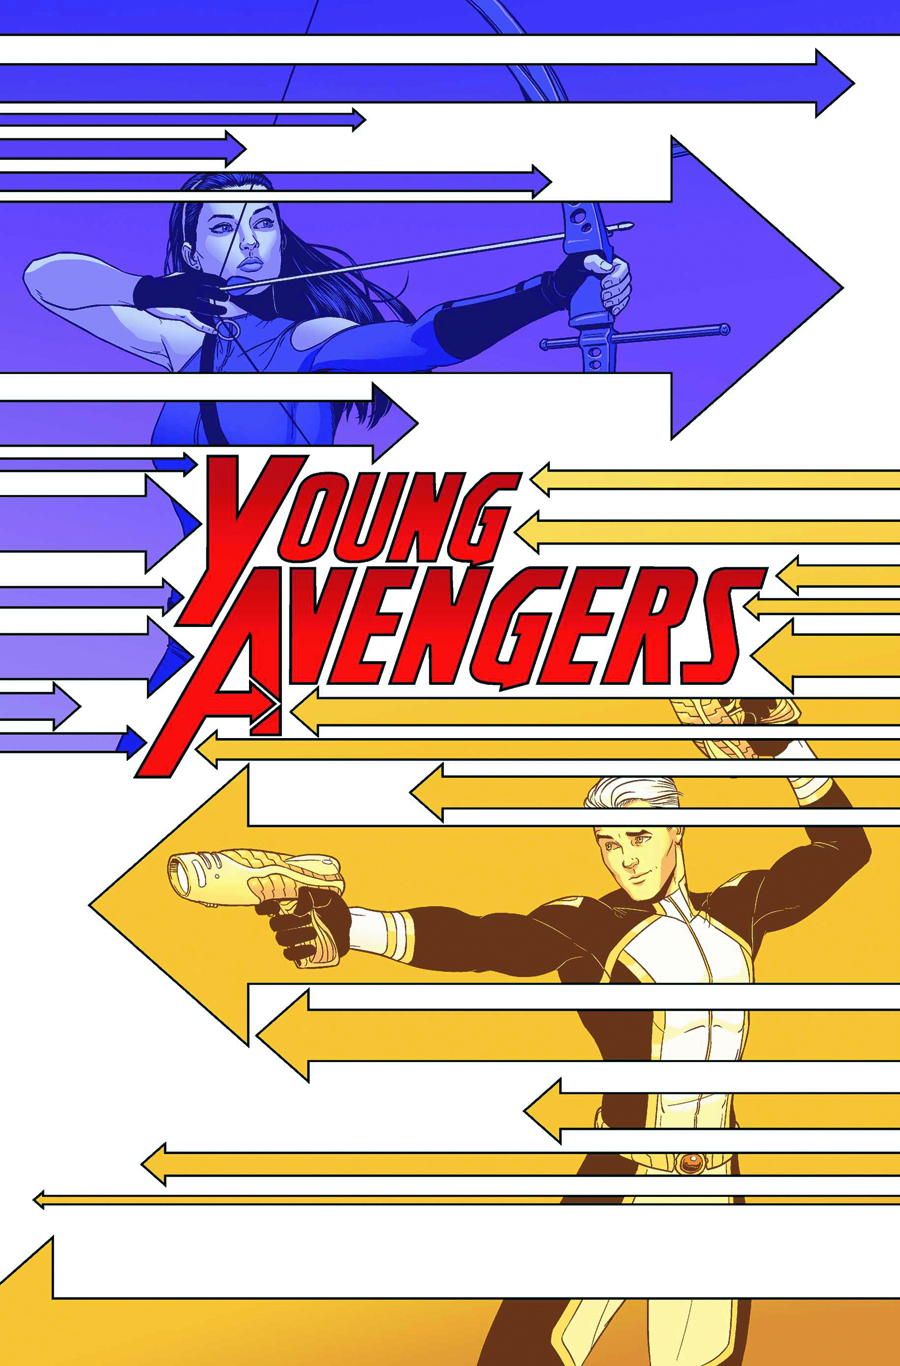 YOUNG AVENGERS #4 NOW